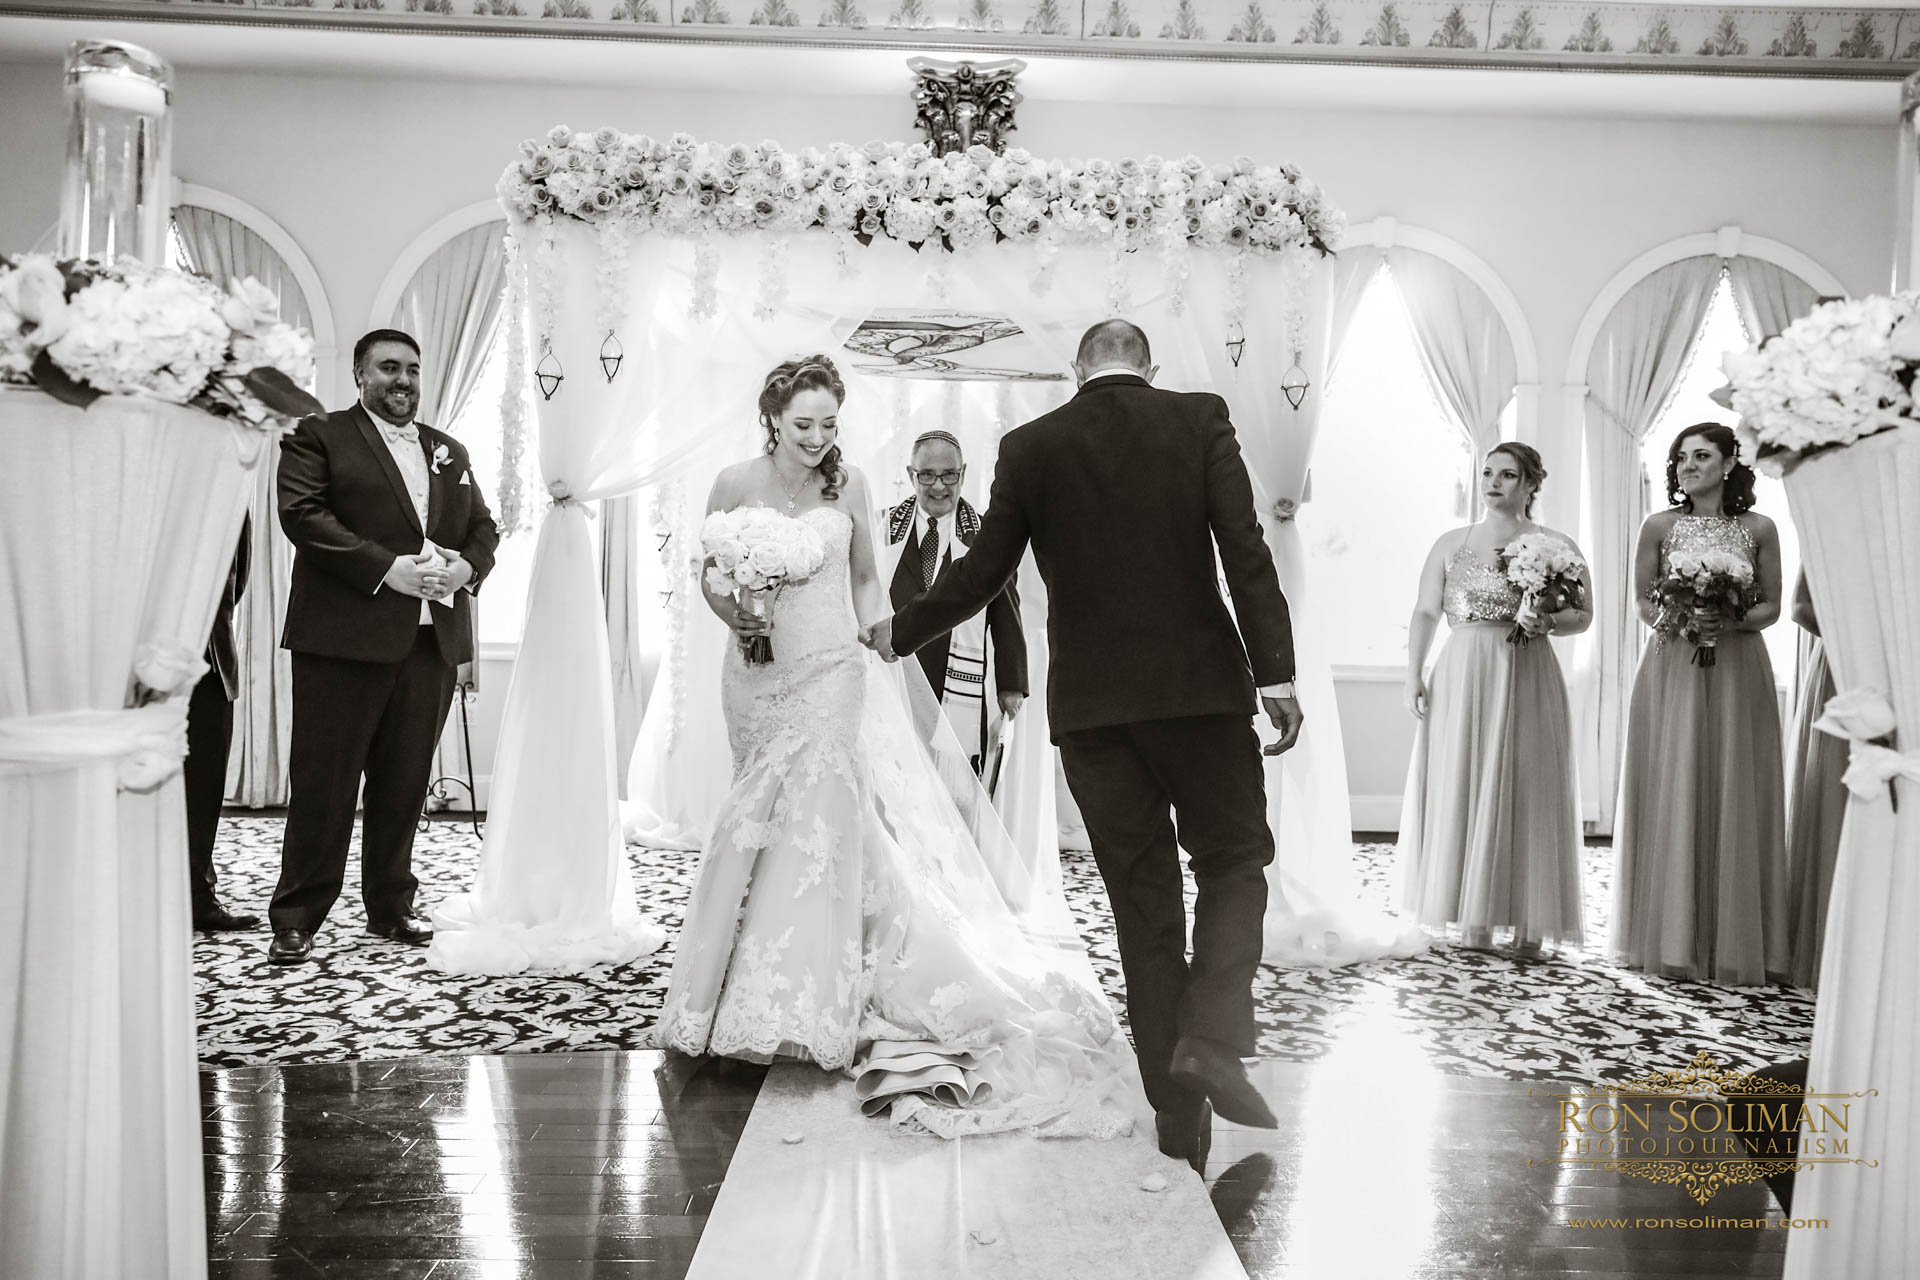 THE MERION WEDDING LM 19